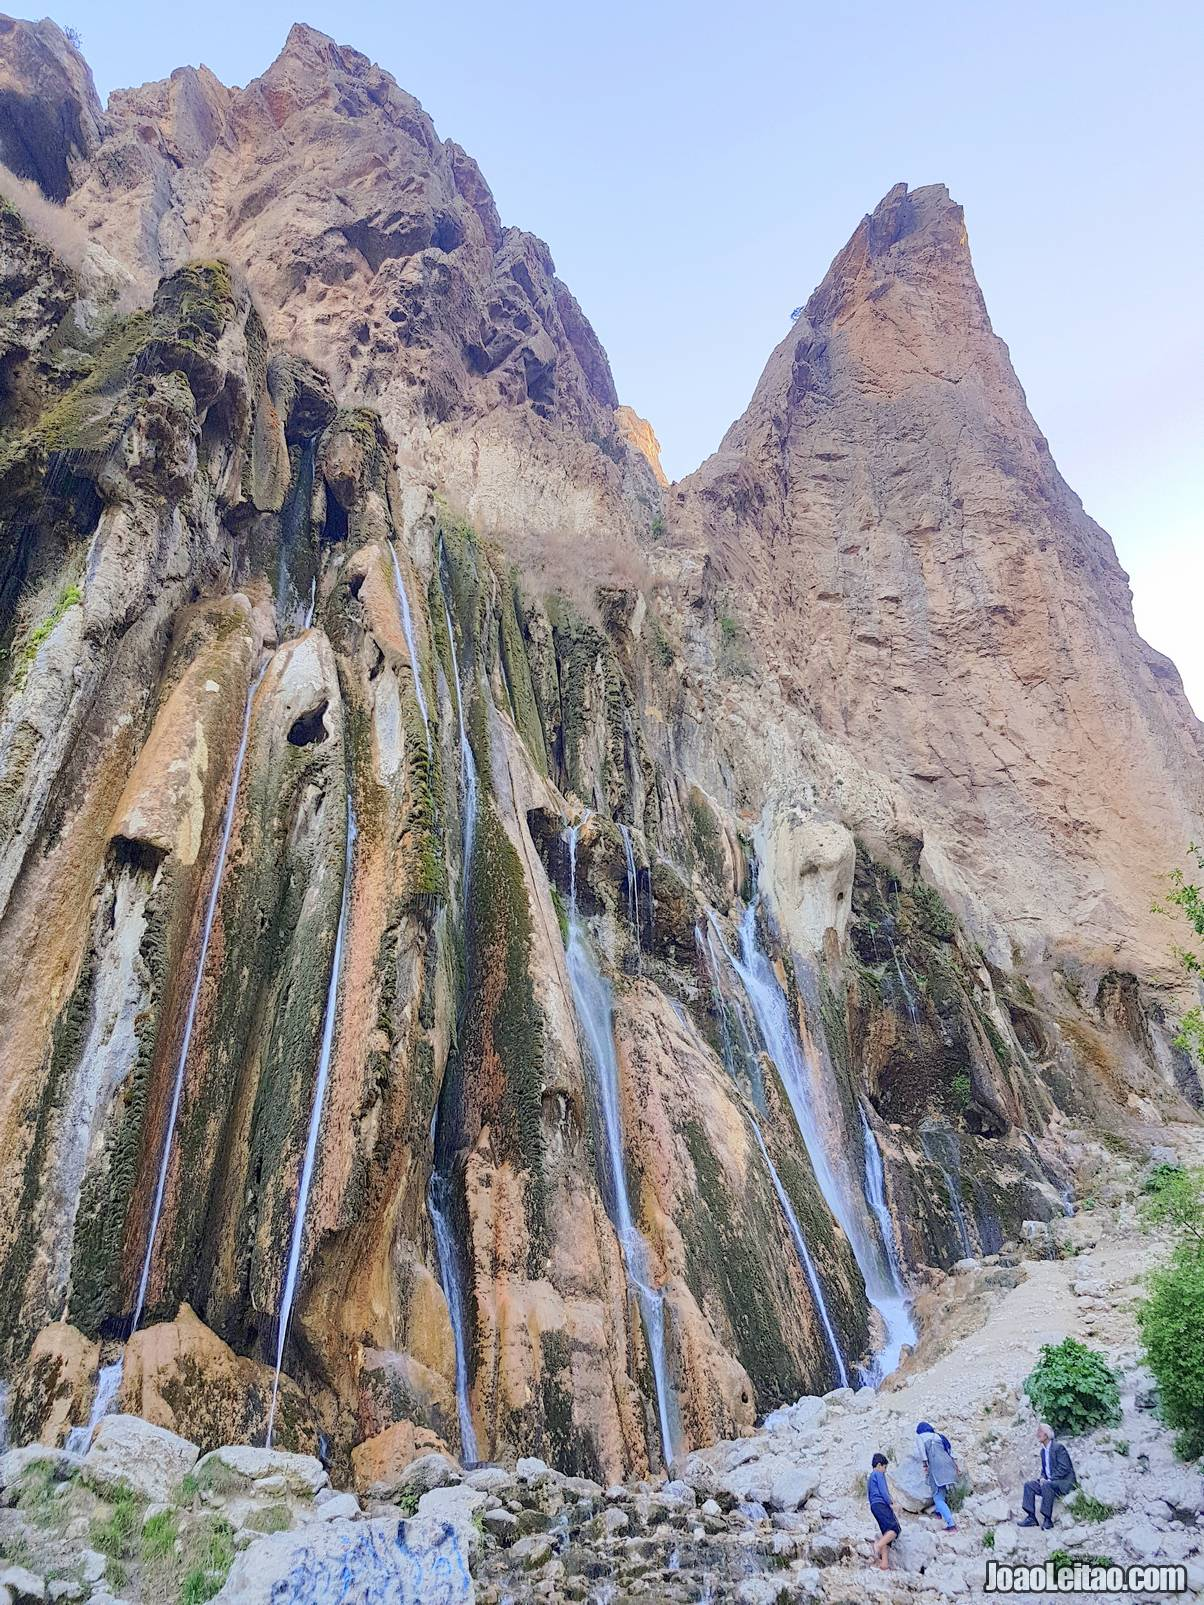 Visit Margoon Waterfall in Iran